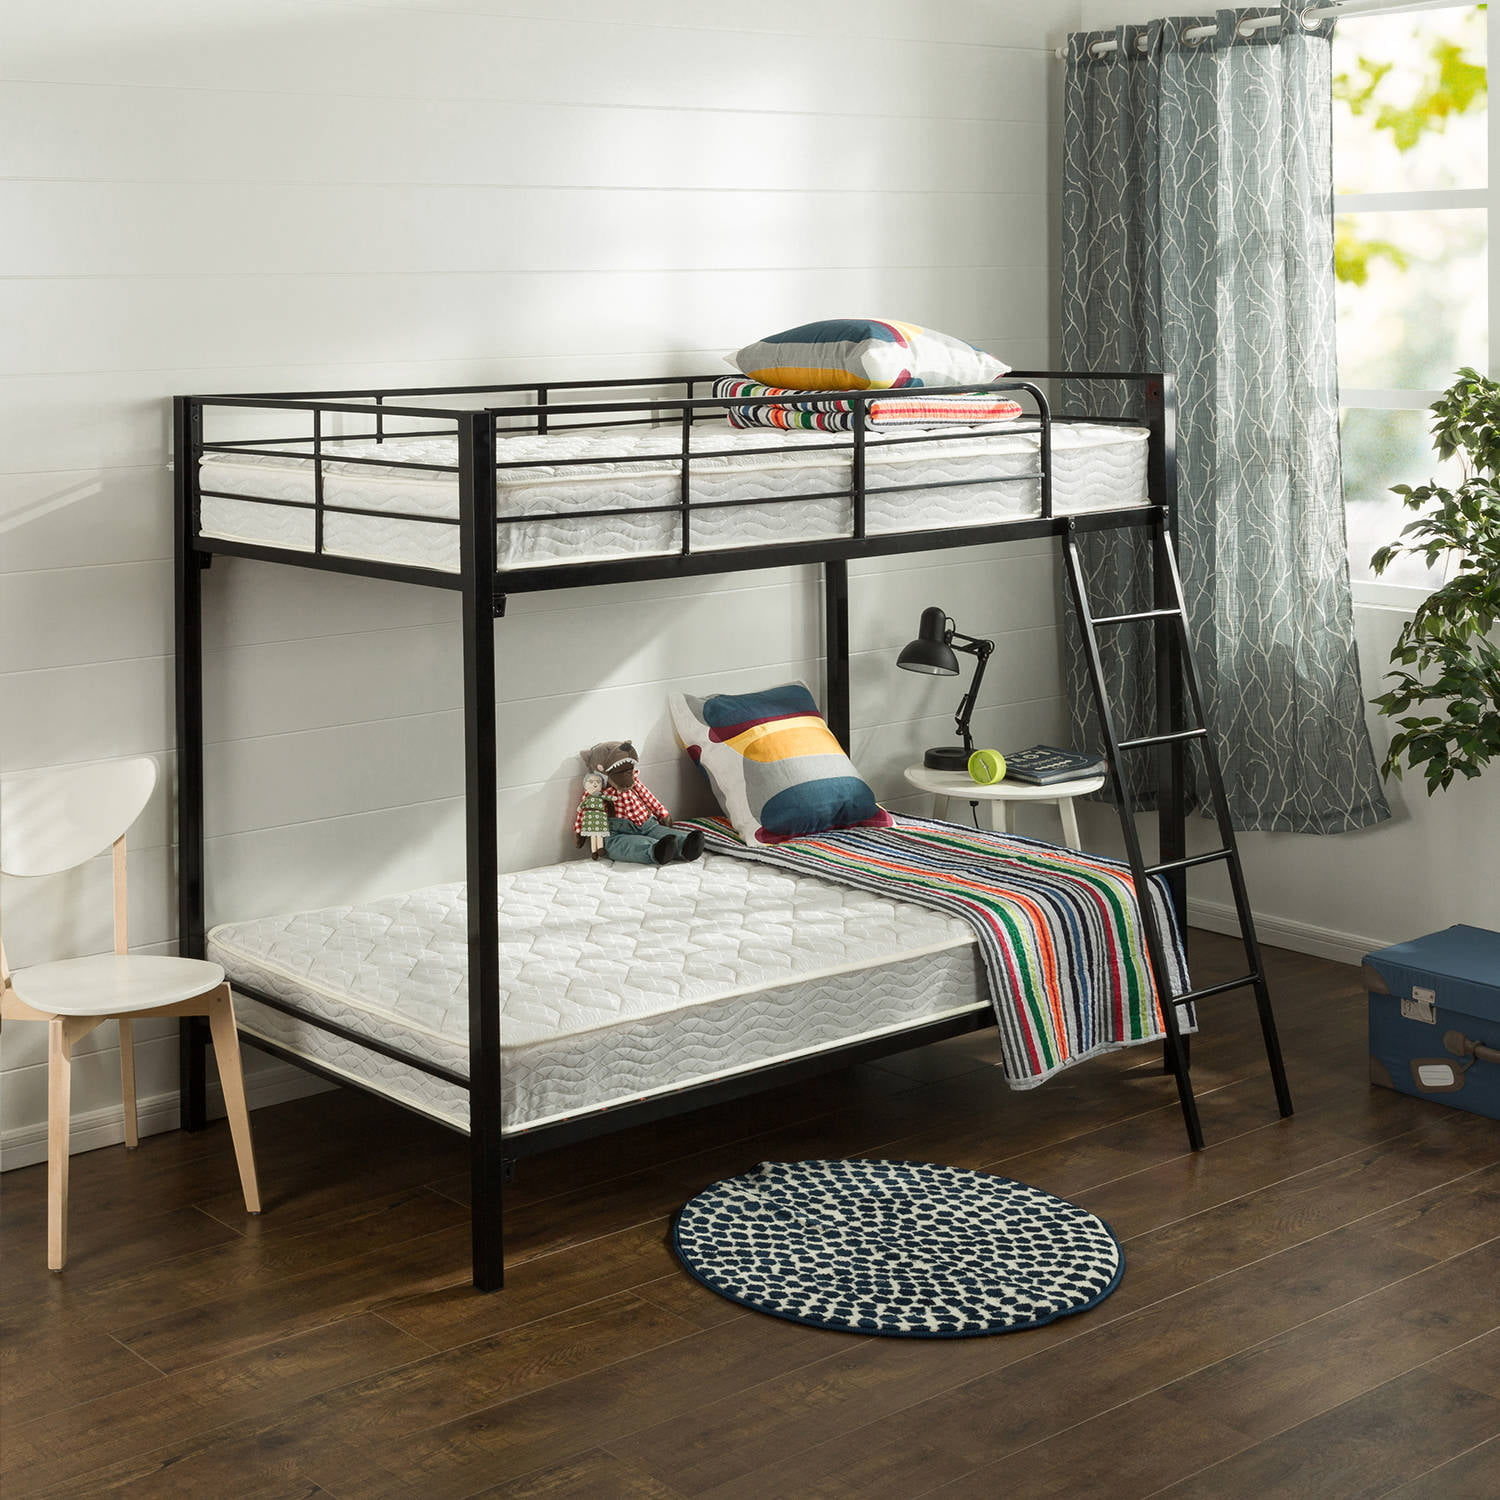 Slumber 1 Comfort 6� Twin Pack Bunk Bed Spring Mattress, Twin over Twin by ZINUS